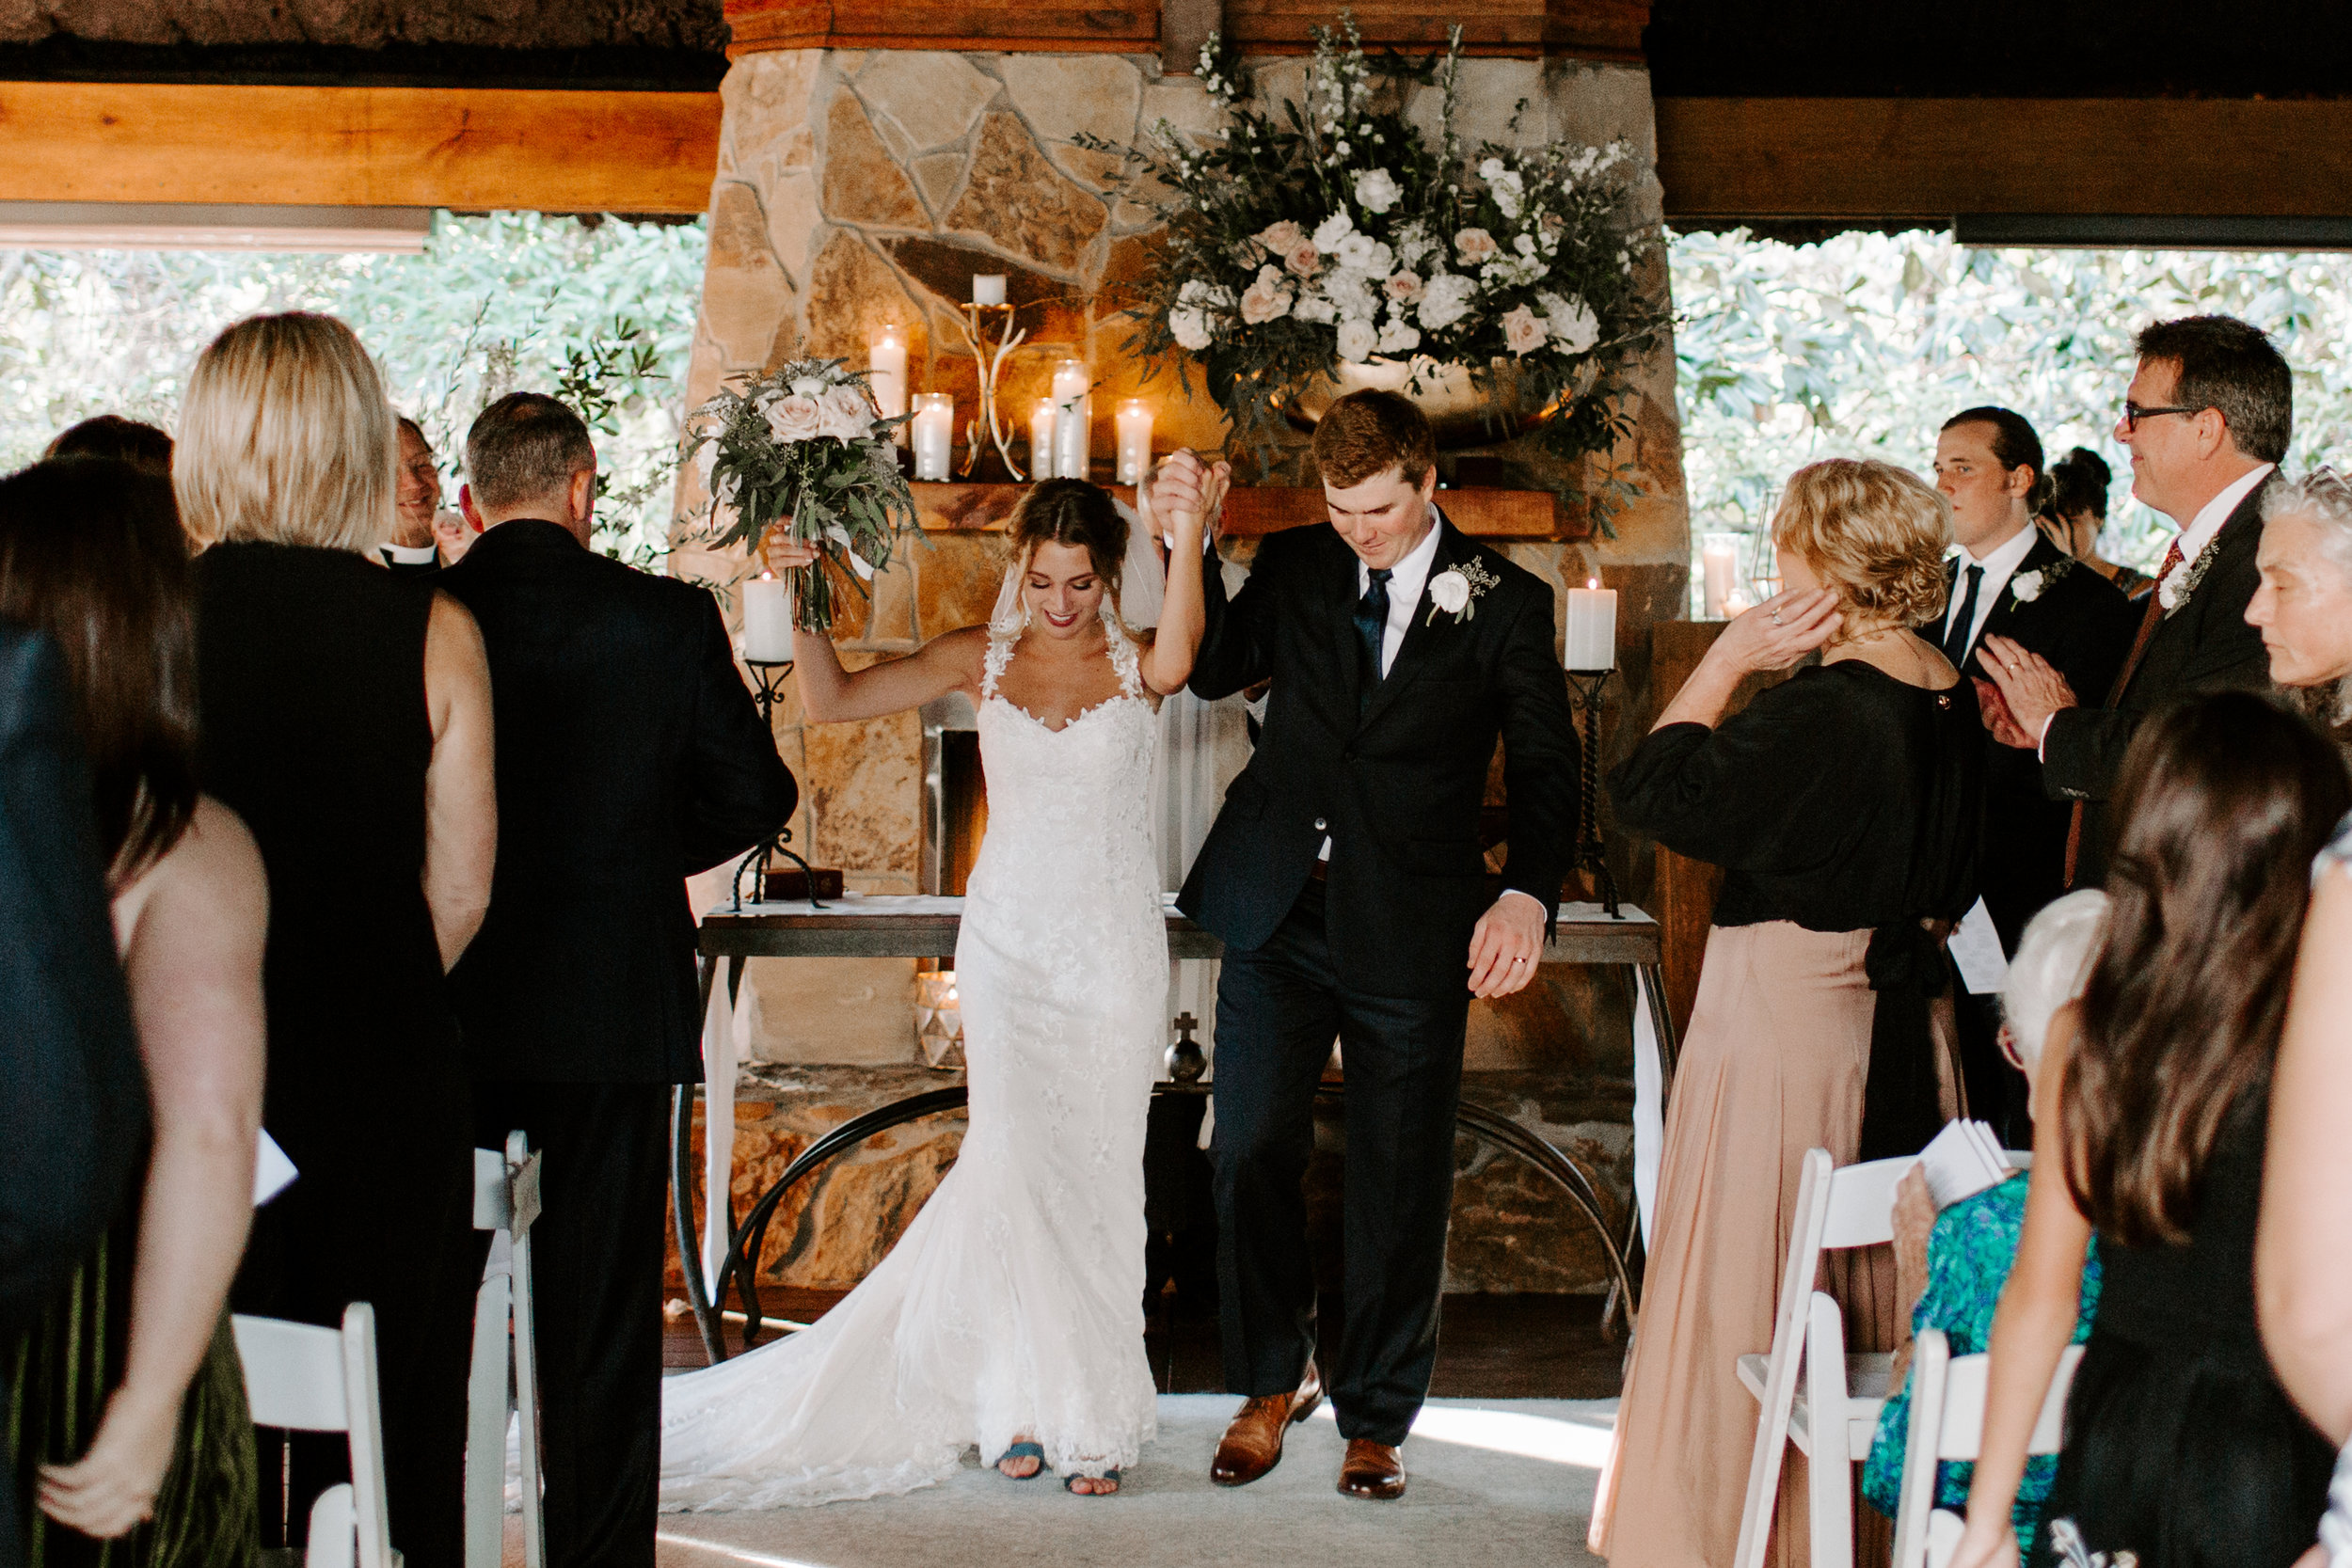 cailin+hails_destination_wedding_fairhope_daphne_mobile_alabama_madisonrylee_0098.jpg